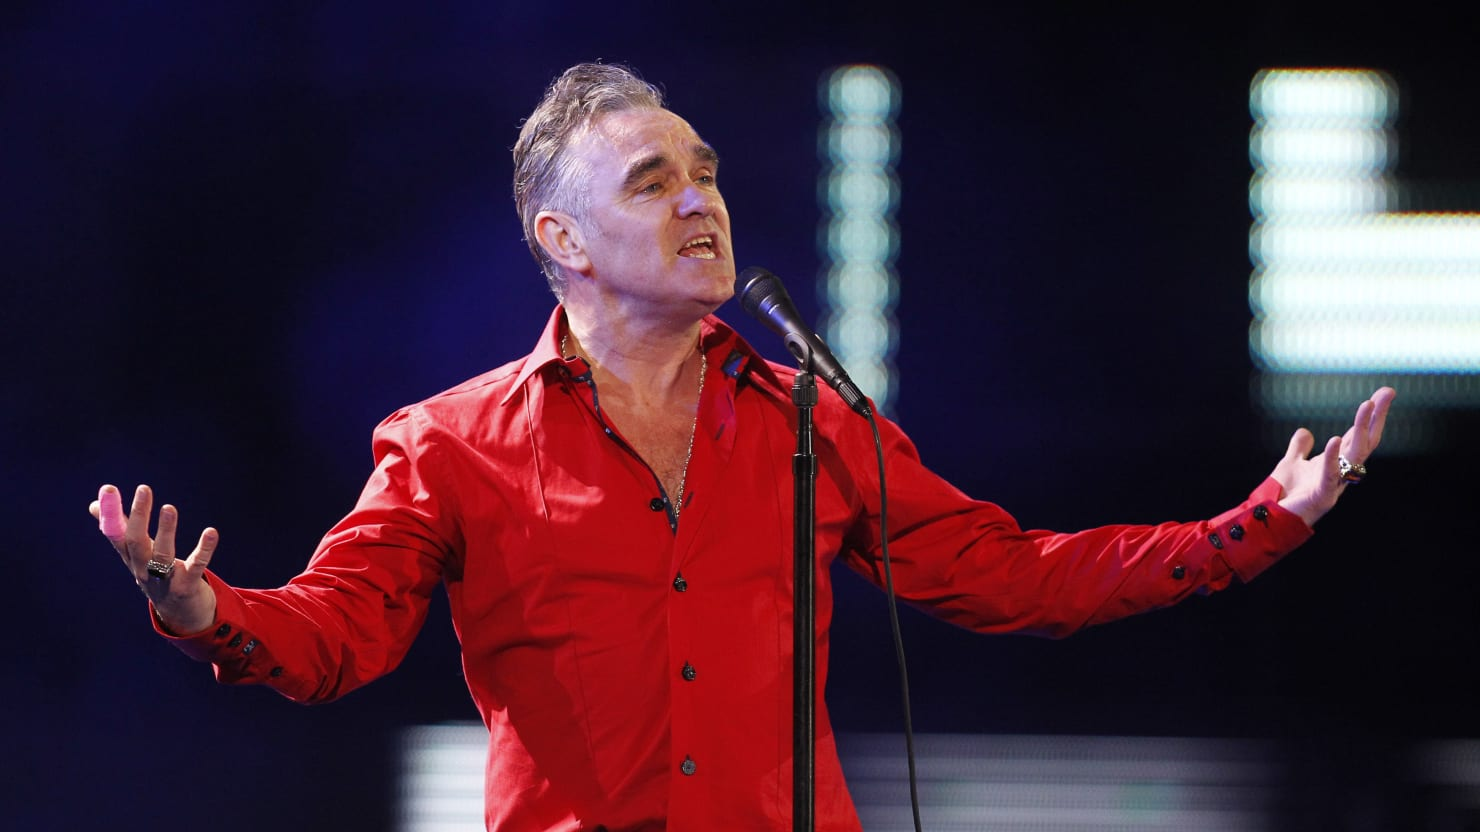 Manchester-born singer Morrissey has spoken of his 'monumental anger' following the terror attack on his hometown